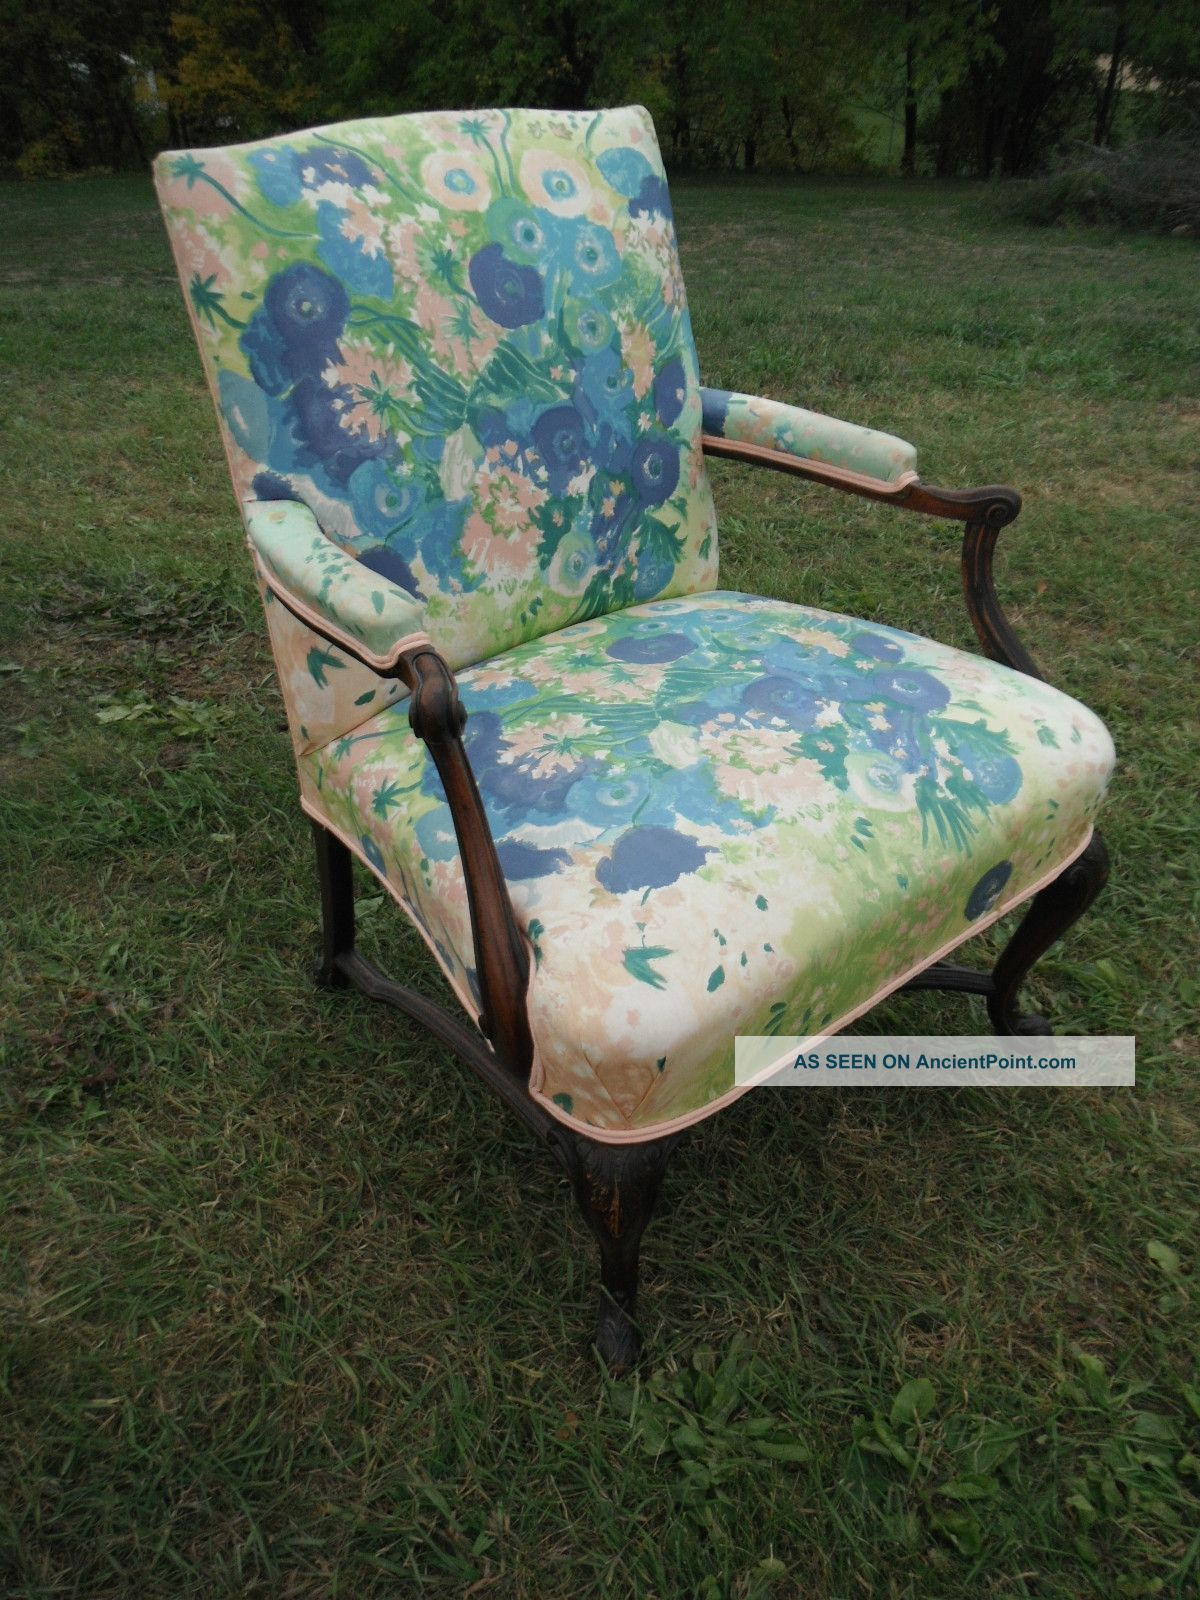 Gorgeous Antique Upholstered Armchair In Pastel Florals - Local Pickup Only Post-1950 photo